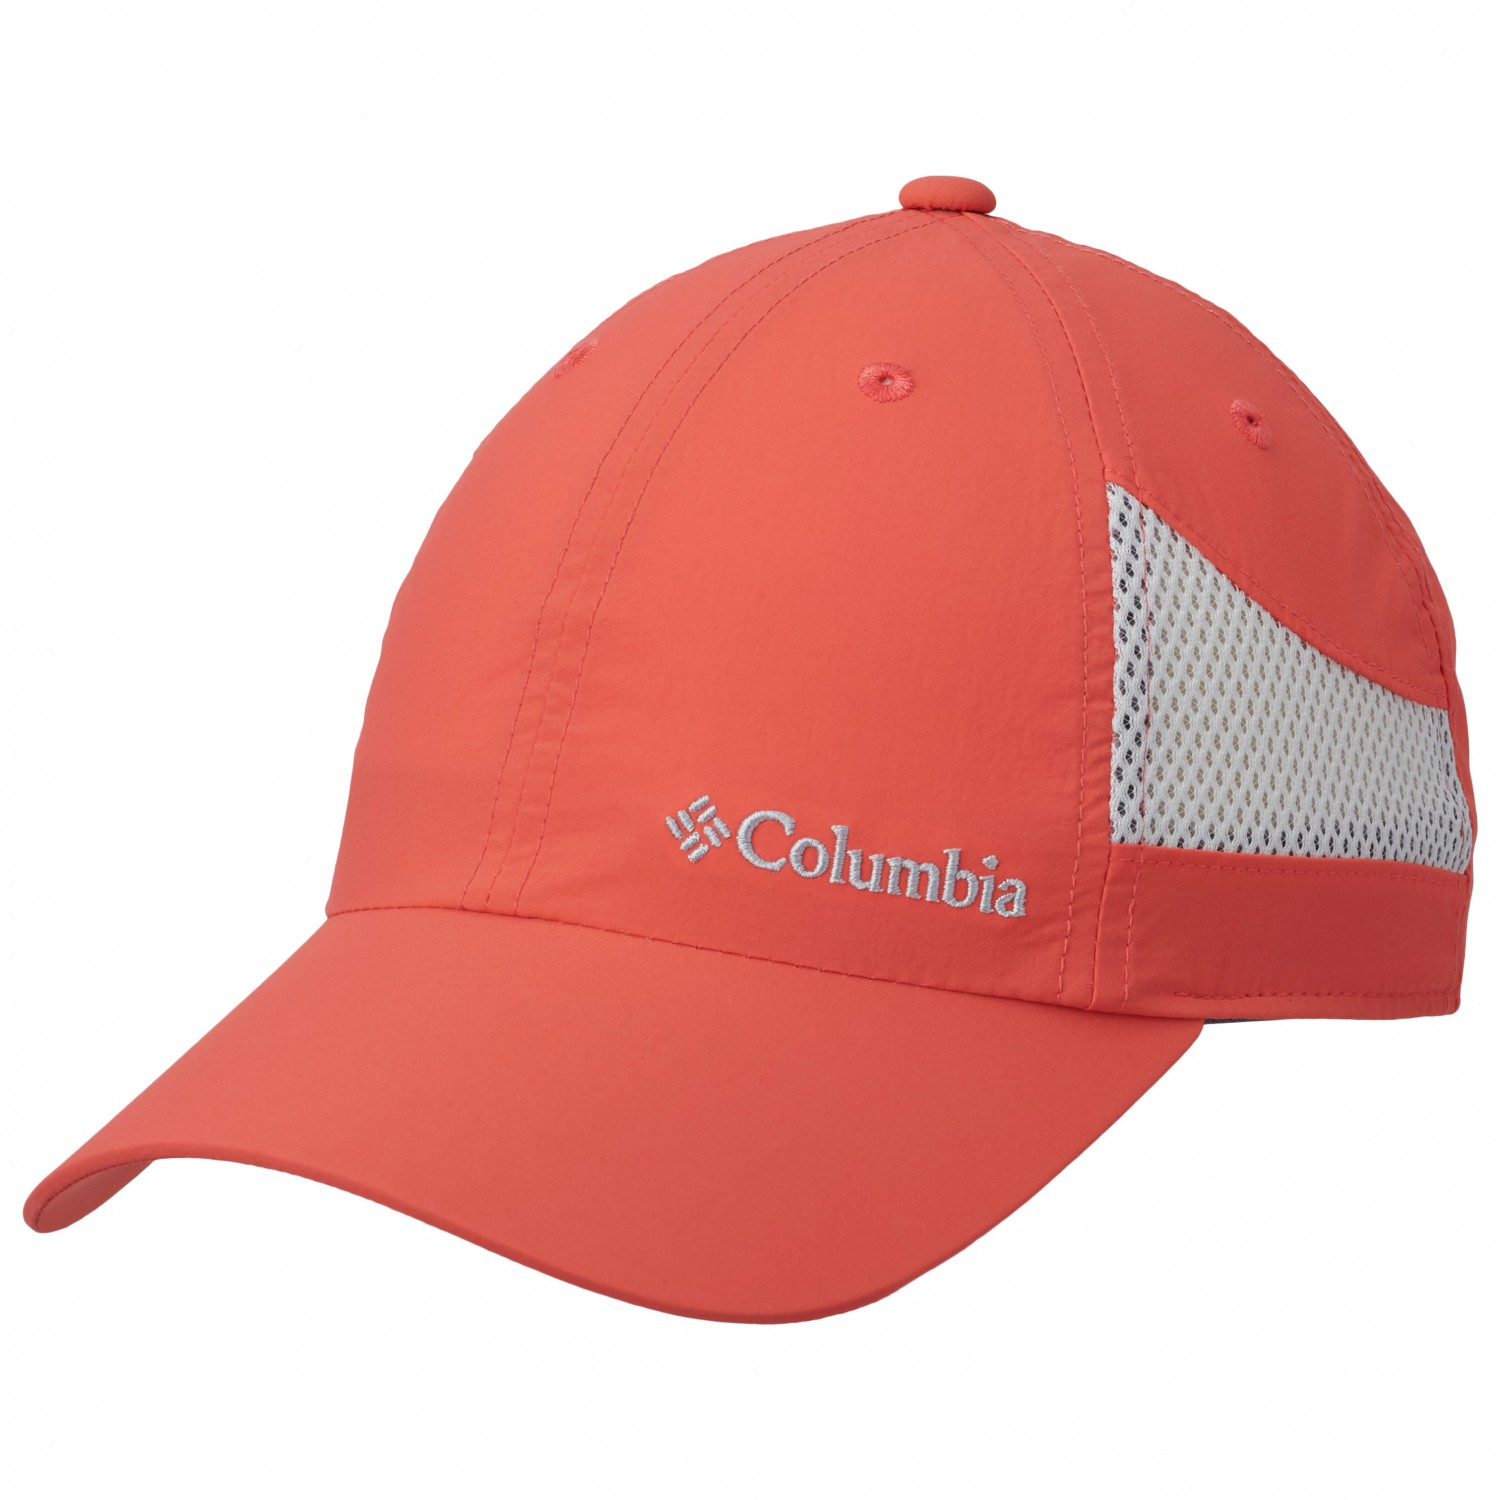 Columbia Tech Shade Hat - Cap  7e5ce692d95